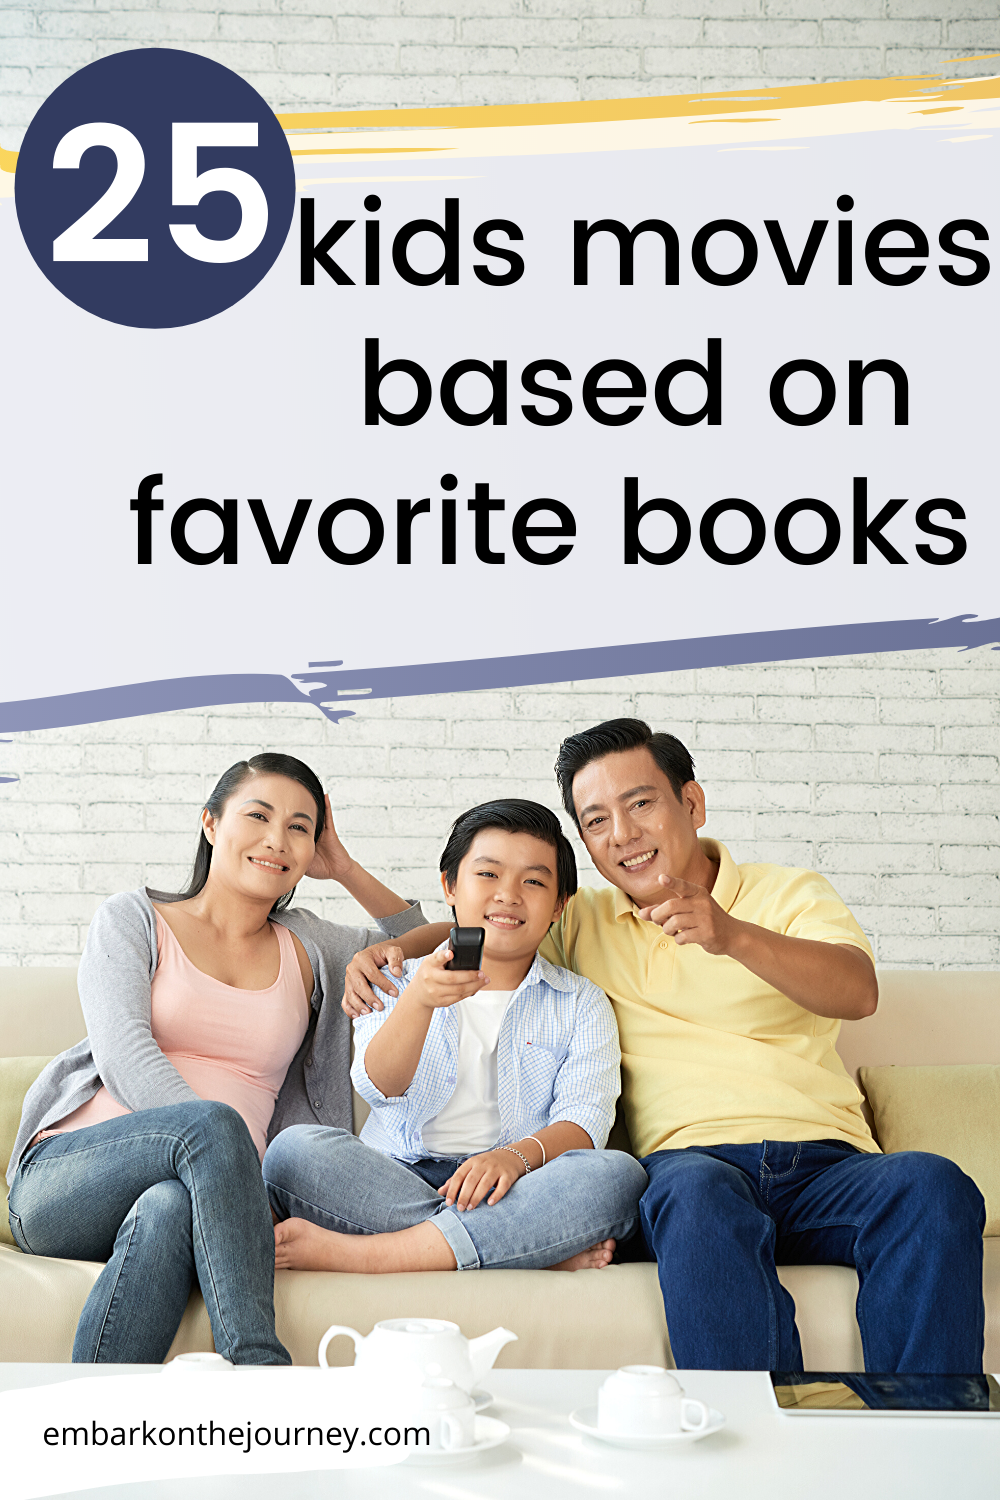 This is an amazing list of the best kids movies based on books that kids in grades K-5 will enjoy! There's also a free printable list for you to download.